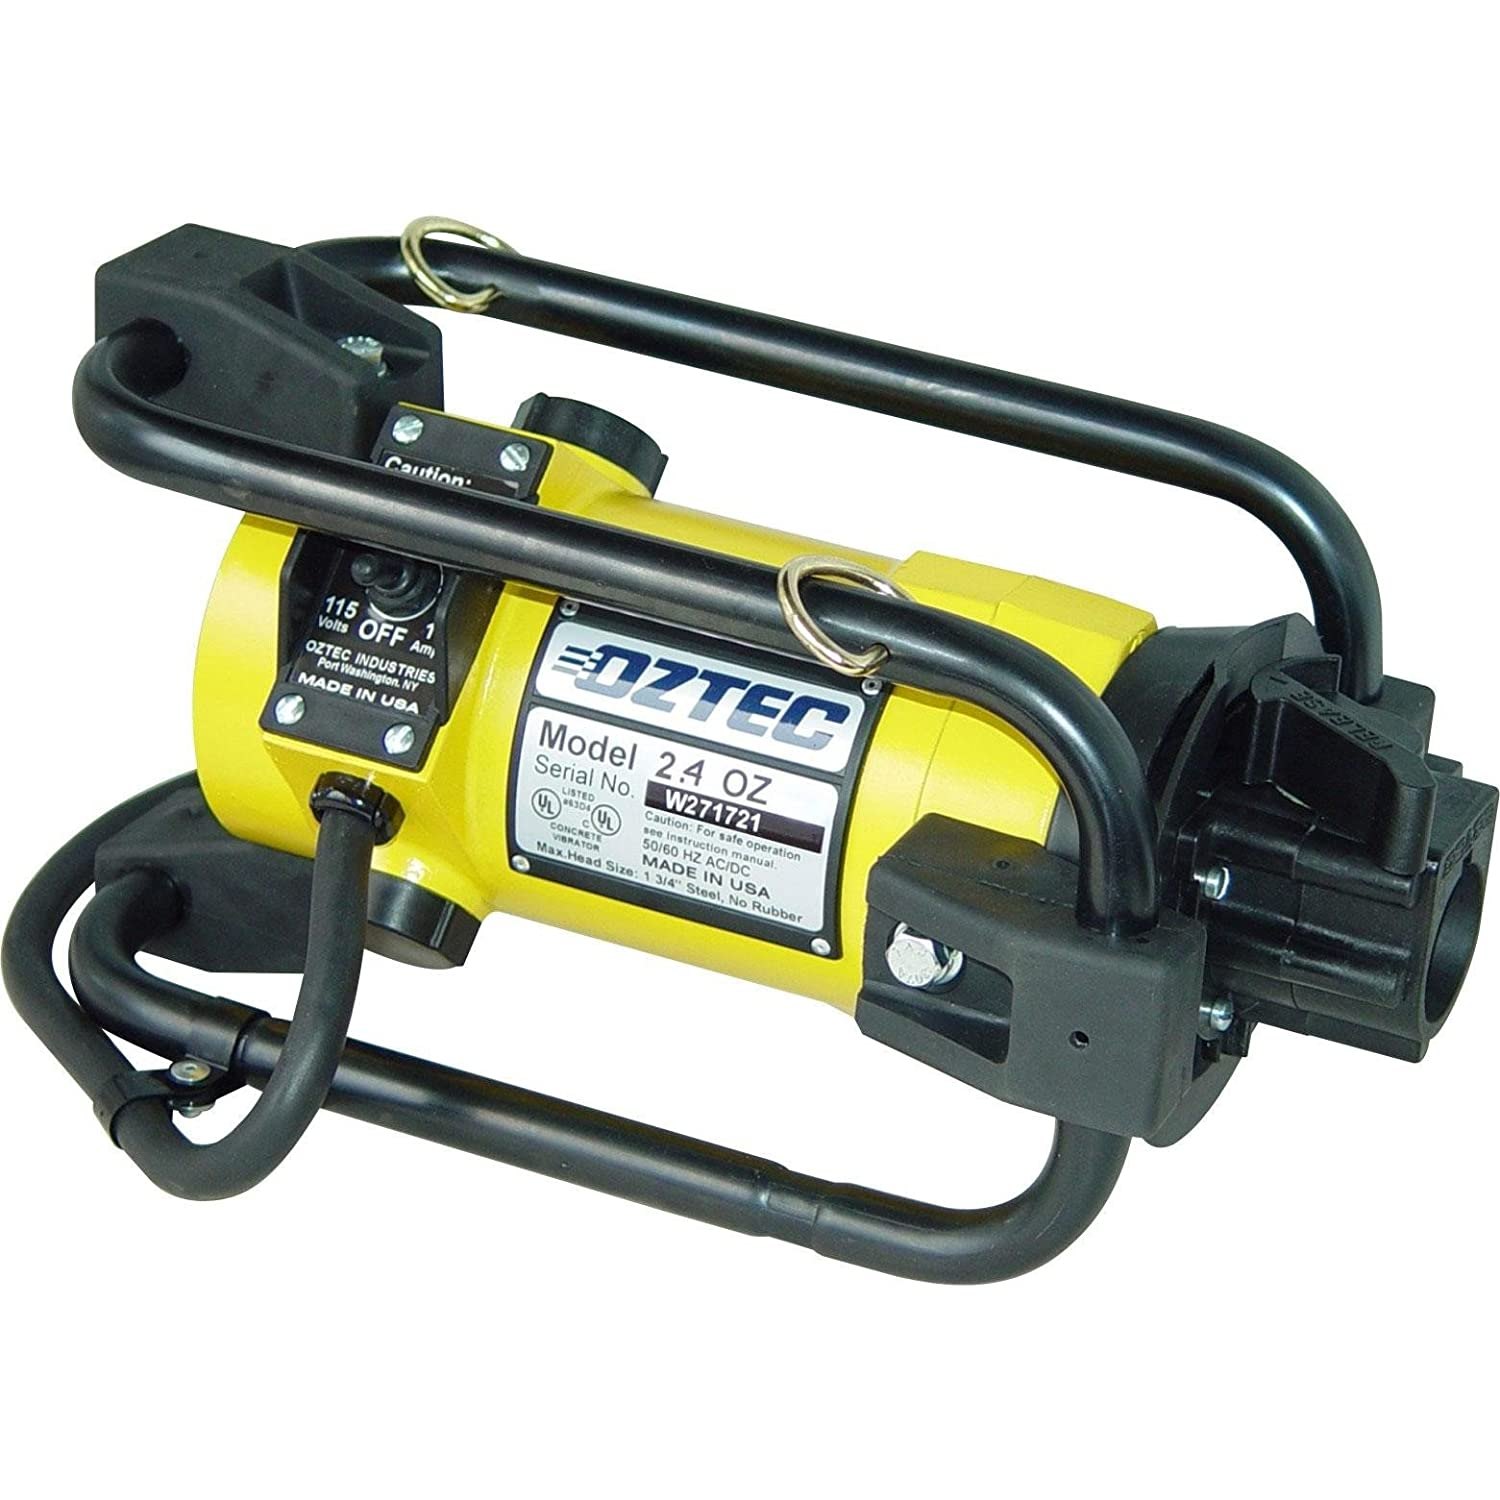 OZTEC Max 88% OFF 2.4SV-FSP21ST-HP088ST Stow Type 1 Concrete Vibrator Phase Directly managed store